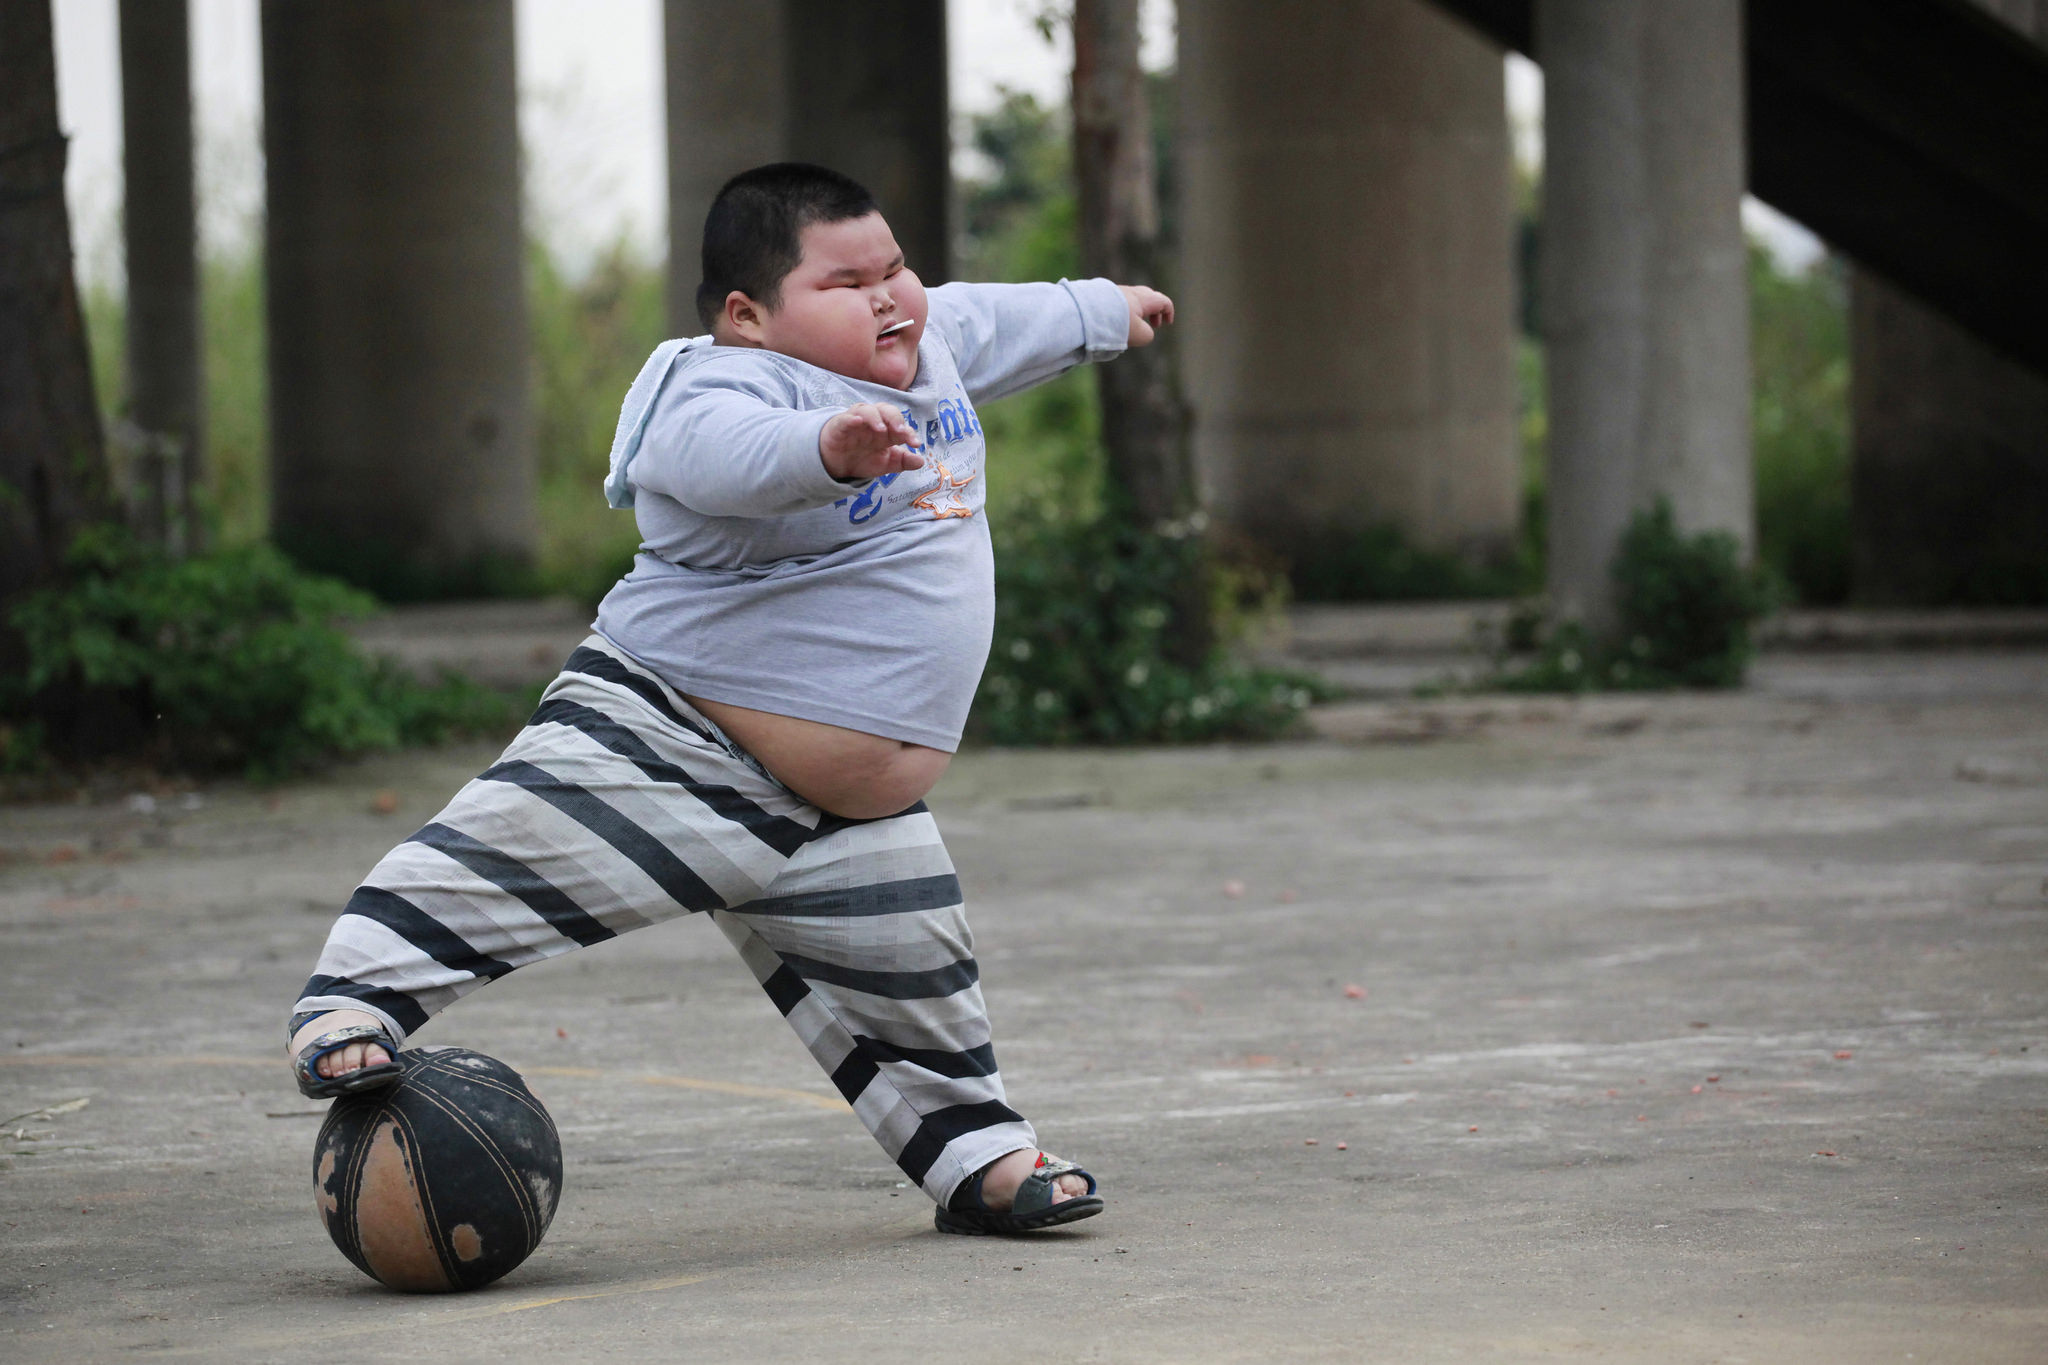 Lu Zhihao, 4, Foshan, Guangdong province March 28, 2011, Photo: REUTERS/Joe Tan